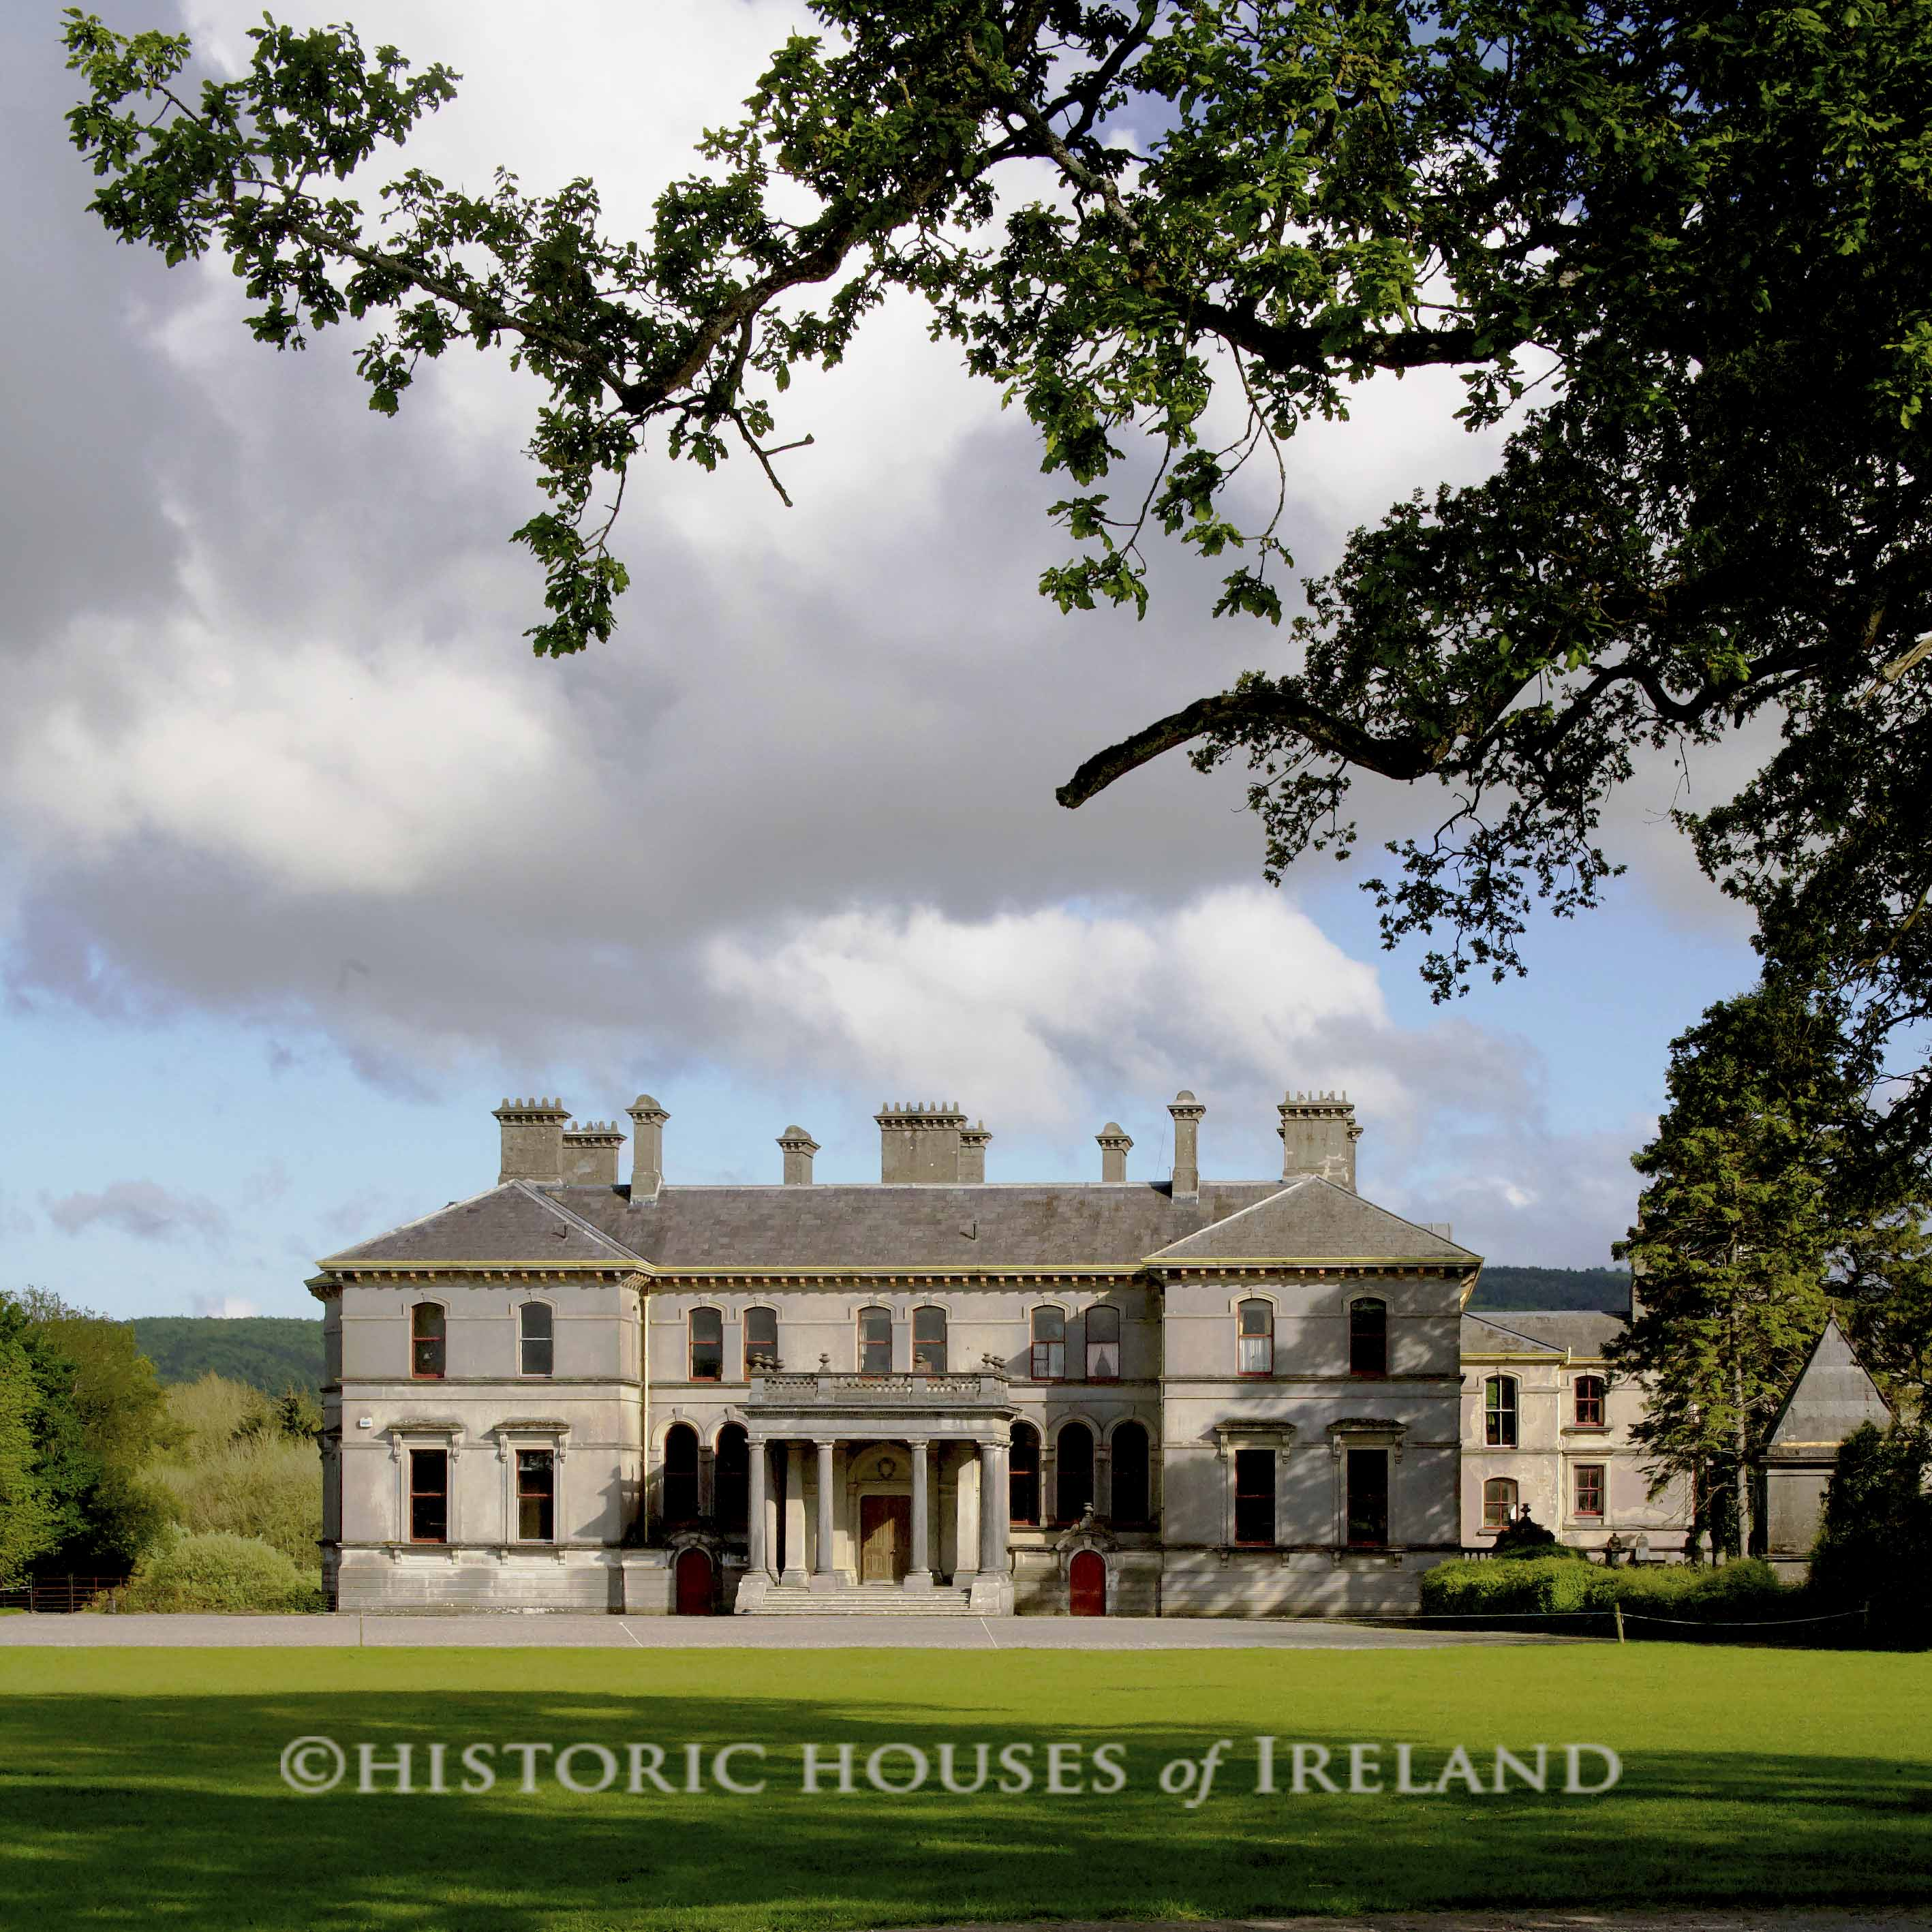 Stradbally Hall, in County Laois